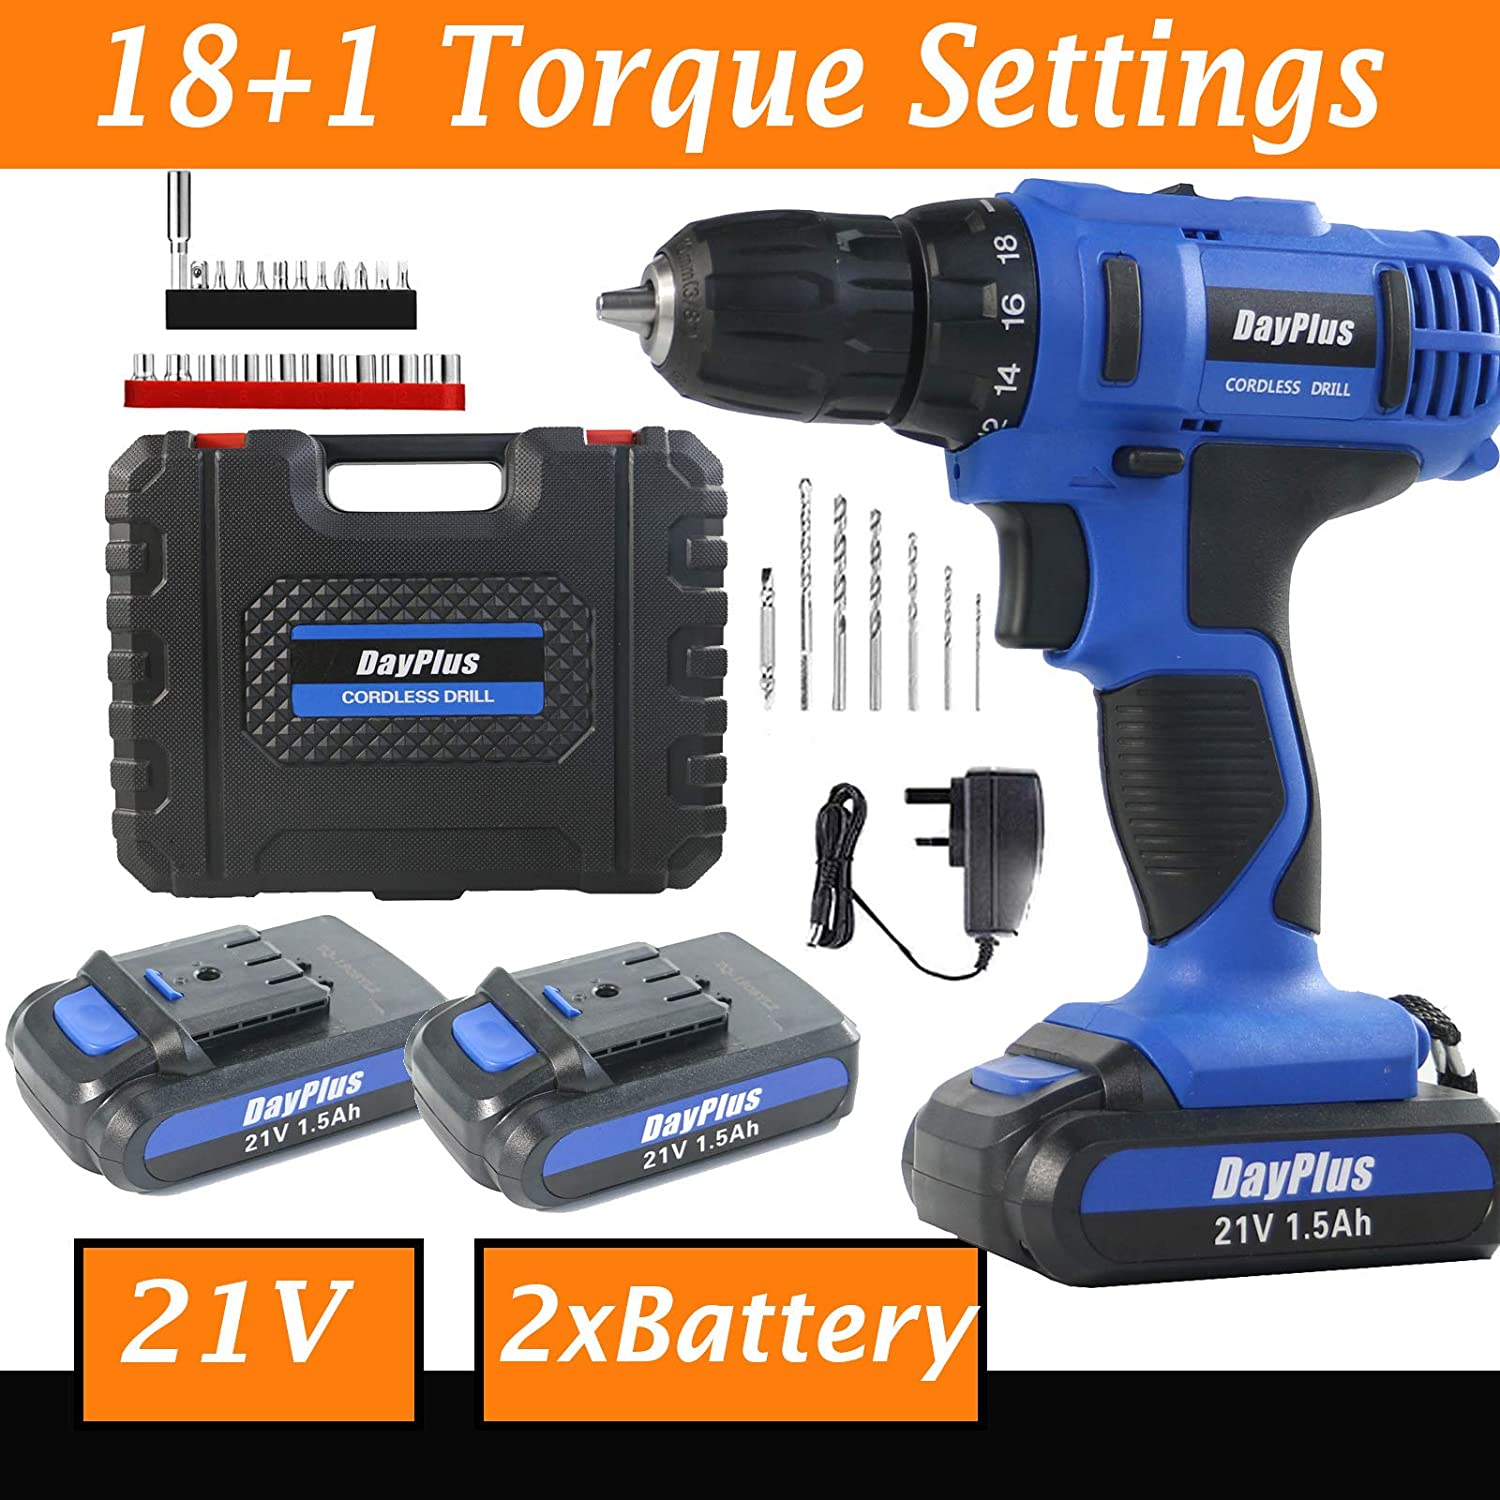 Power 2x21V Lithium Ion Rechargeable Battery Cordless Drill Battery, Power Drill Set w 3 8 Keyless Chuck, Variable Speed, 18 1 Position and 29pcs Drill Driver Bits, Fast Charger, Carry case